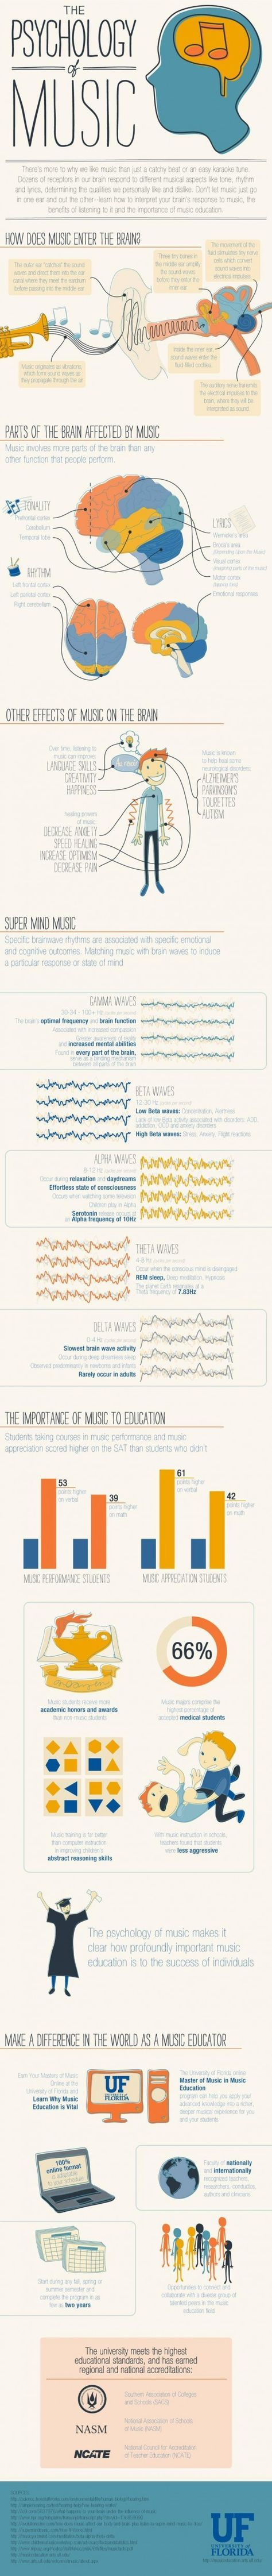 This Is Your Brain On Music [Infographic] How #music enters the brain, and what it does when it gets there.   Univ. of Florida via PopSci #k12 #education